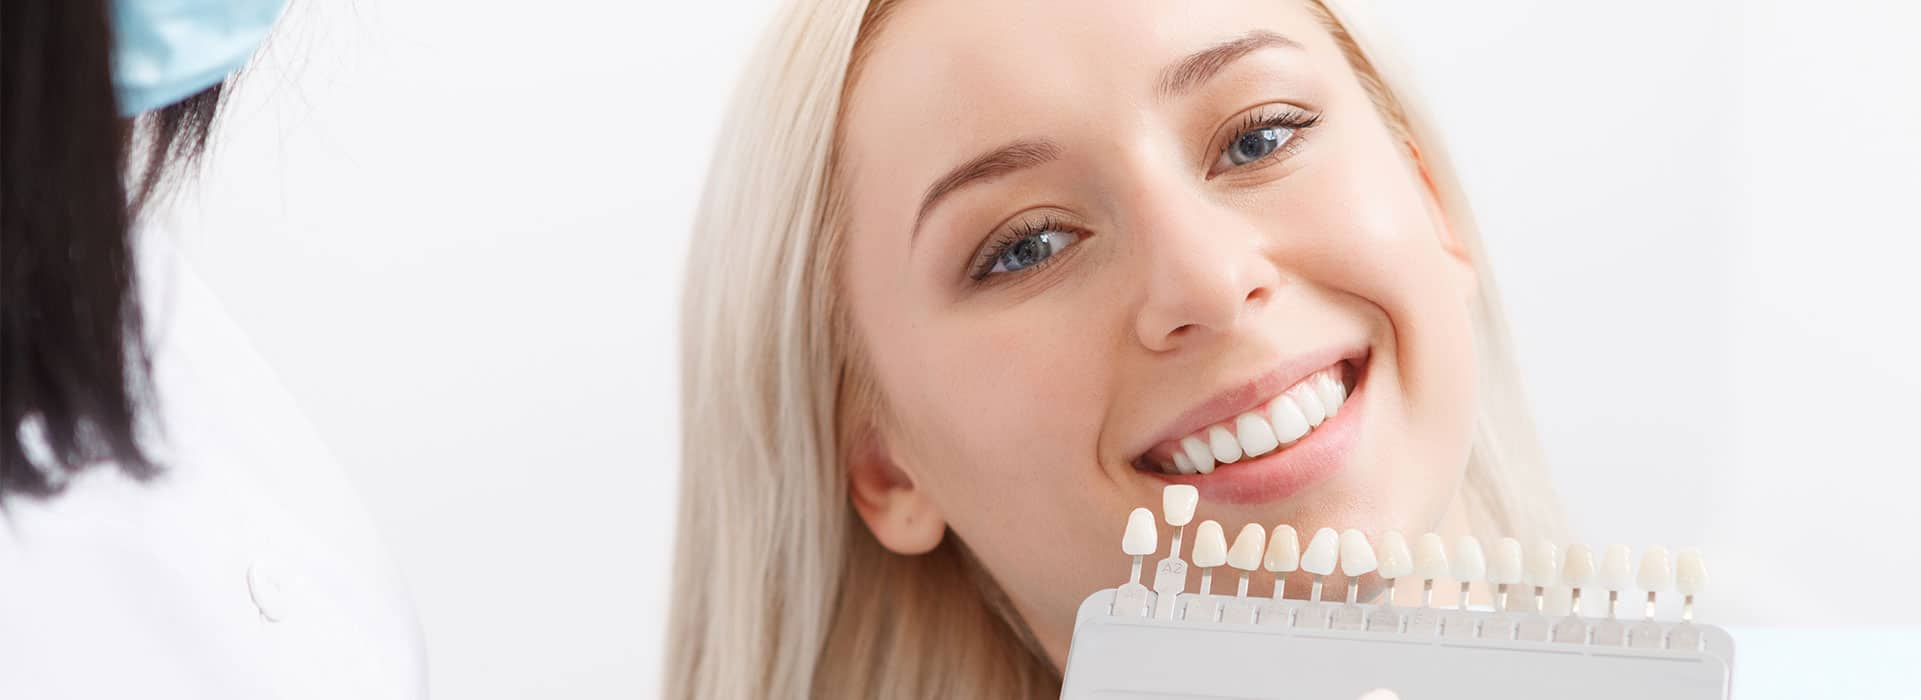 Achieve a Brighter Smile in Under an Hour